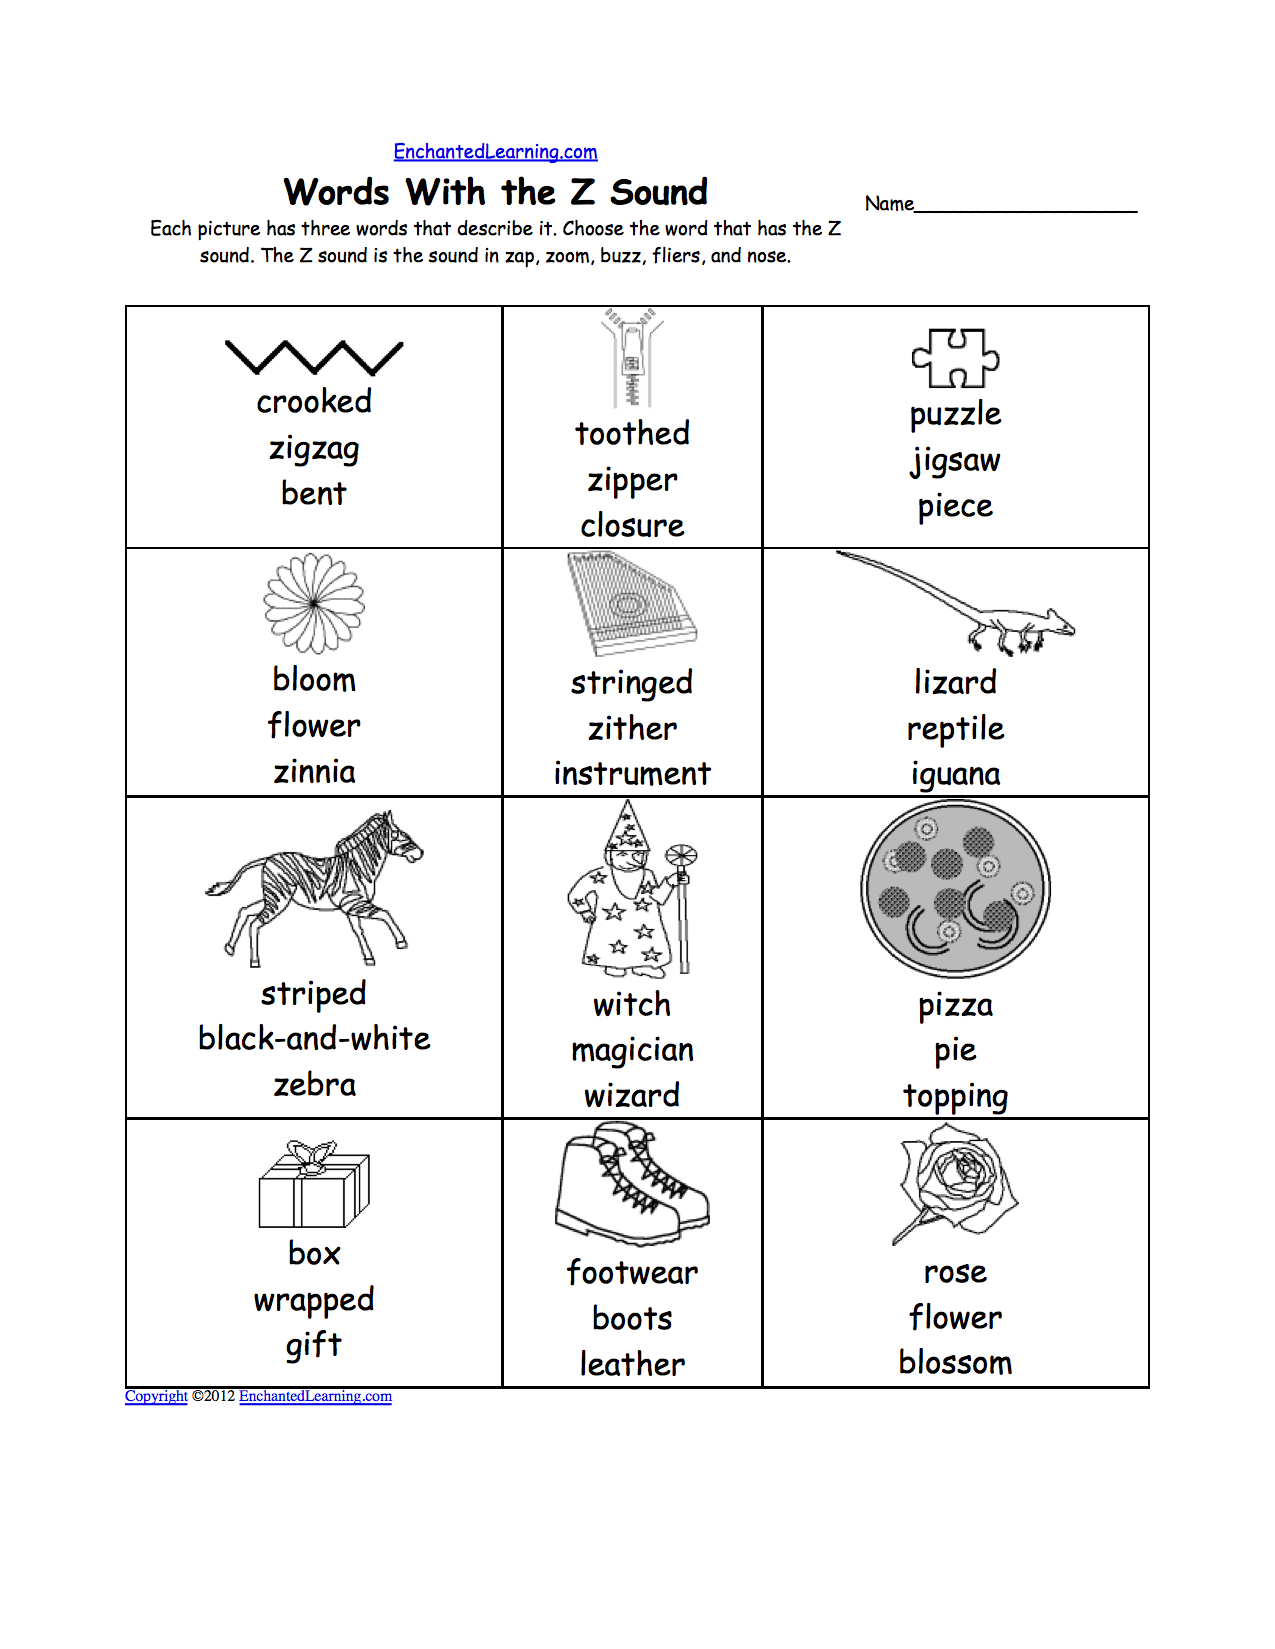 Weirdmailus  Splendid Phonics Worksheets Multiple Choice Worksheets To Print  With Outstanding Phonics Worksheets Multiple Choice Worksheets To Print  Enchantedlearningcom With Amazing Dividing Polynomial By Monomial Worksheet Also Crm Worksheet Army In Addition Topic Sentence Paragraph Worksheet And Lcm Hcf Worksheet As Well As Class  Maths Worksheet Additionally Free Printable Alphabet Letters Worksheets From Enchantedlearningcom With Weirdmailus  Outstanding Phonics Worksheets Multiple Choice Worksheets To Print  With Amazing Phonics Worksheets Multiple Choice Worksheets To Print  Enchantedlearningcom And Splendid Dividing Polynomial By Monomial Worksheet Also Crm Worksheet Army In Addition Topic Sentence Paragraph Worksheet From Enchantedlearningcom